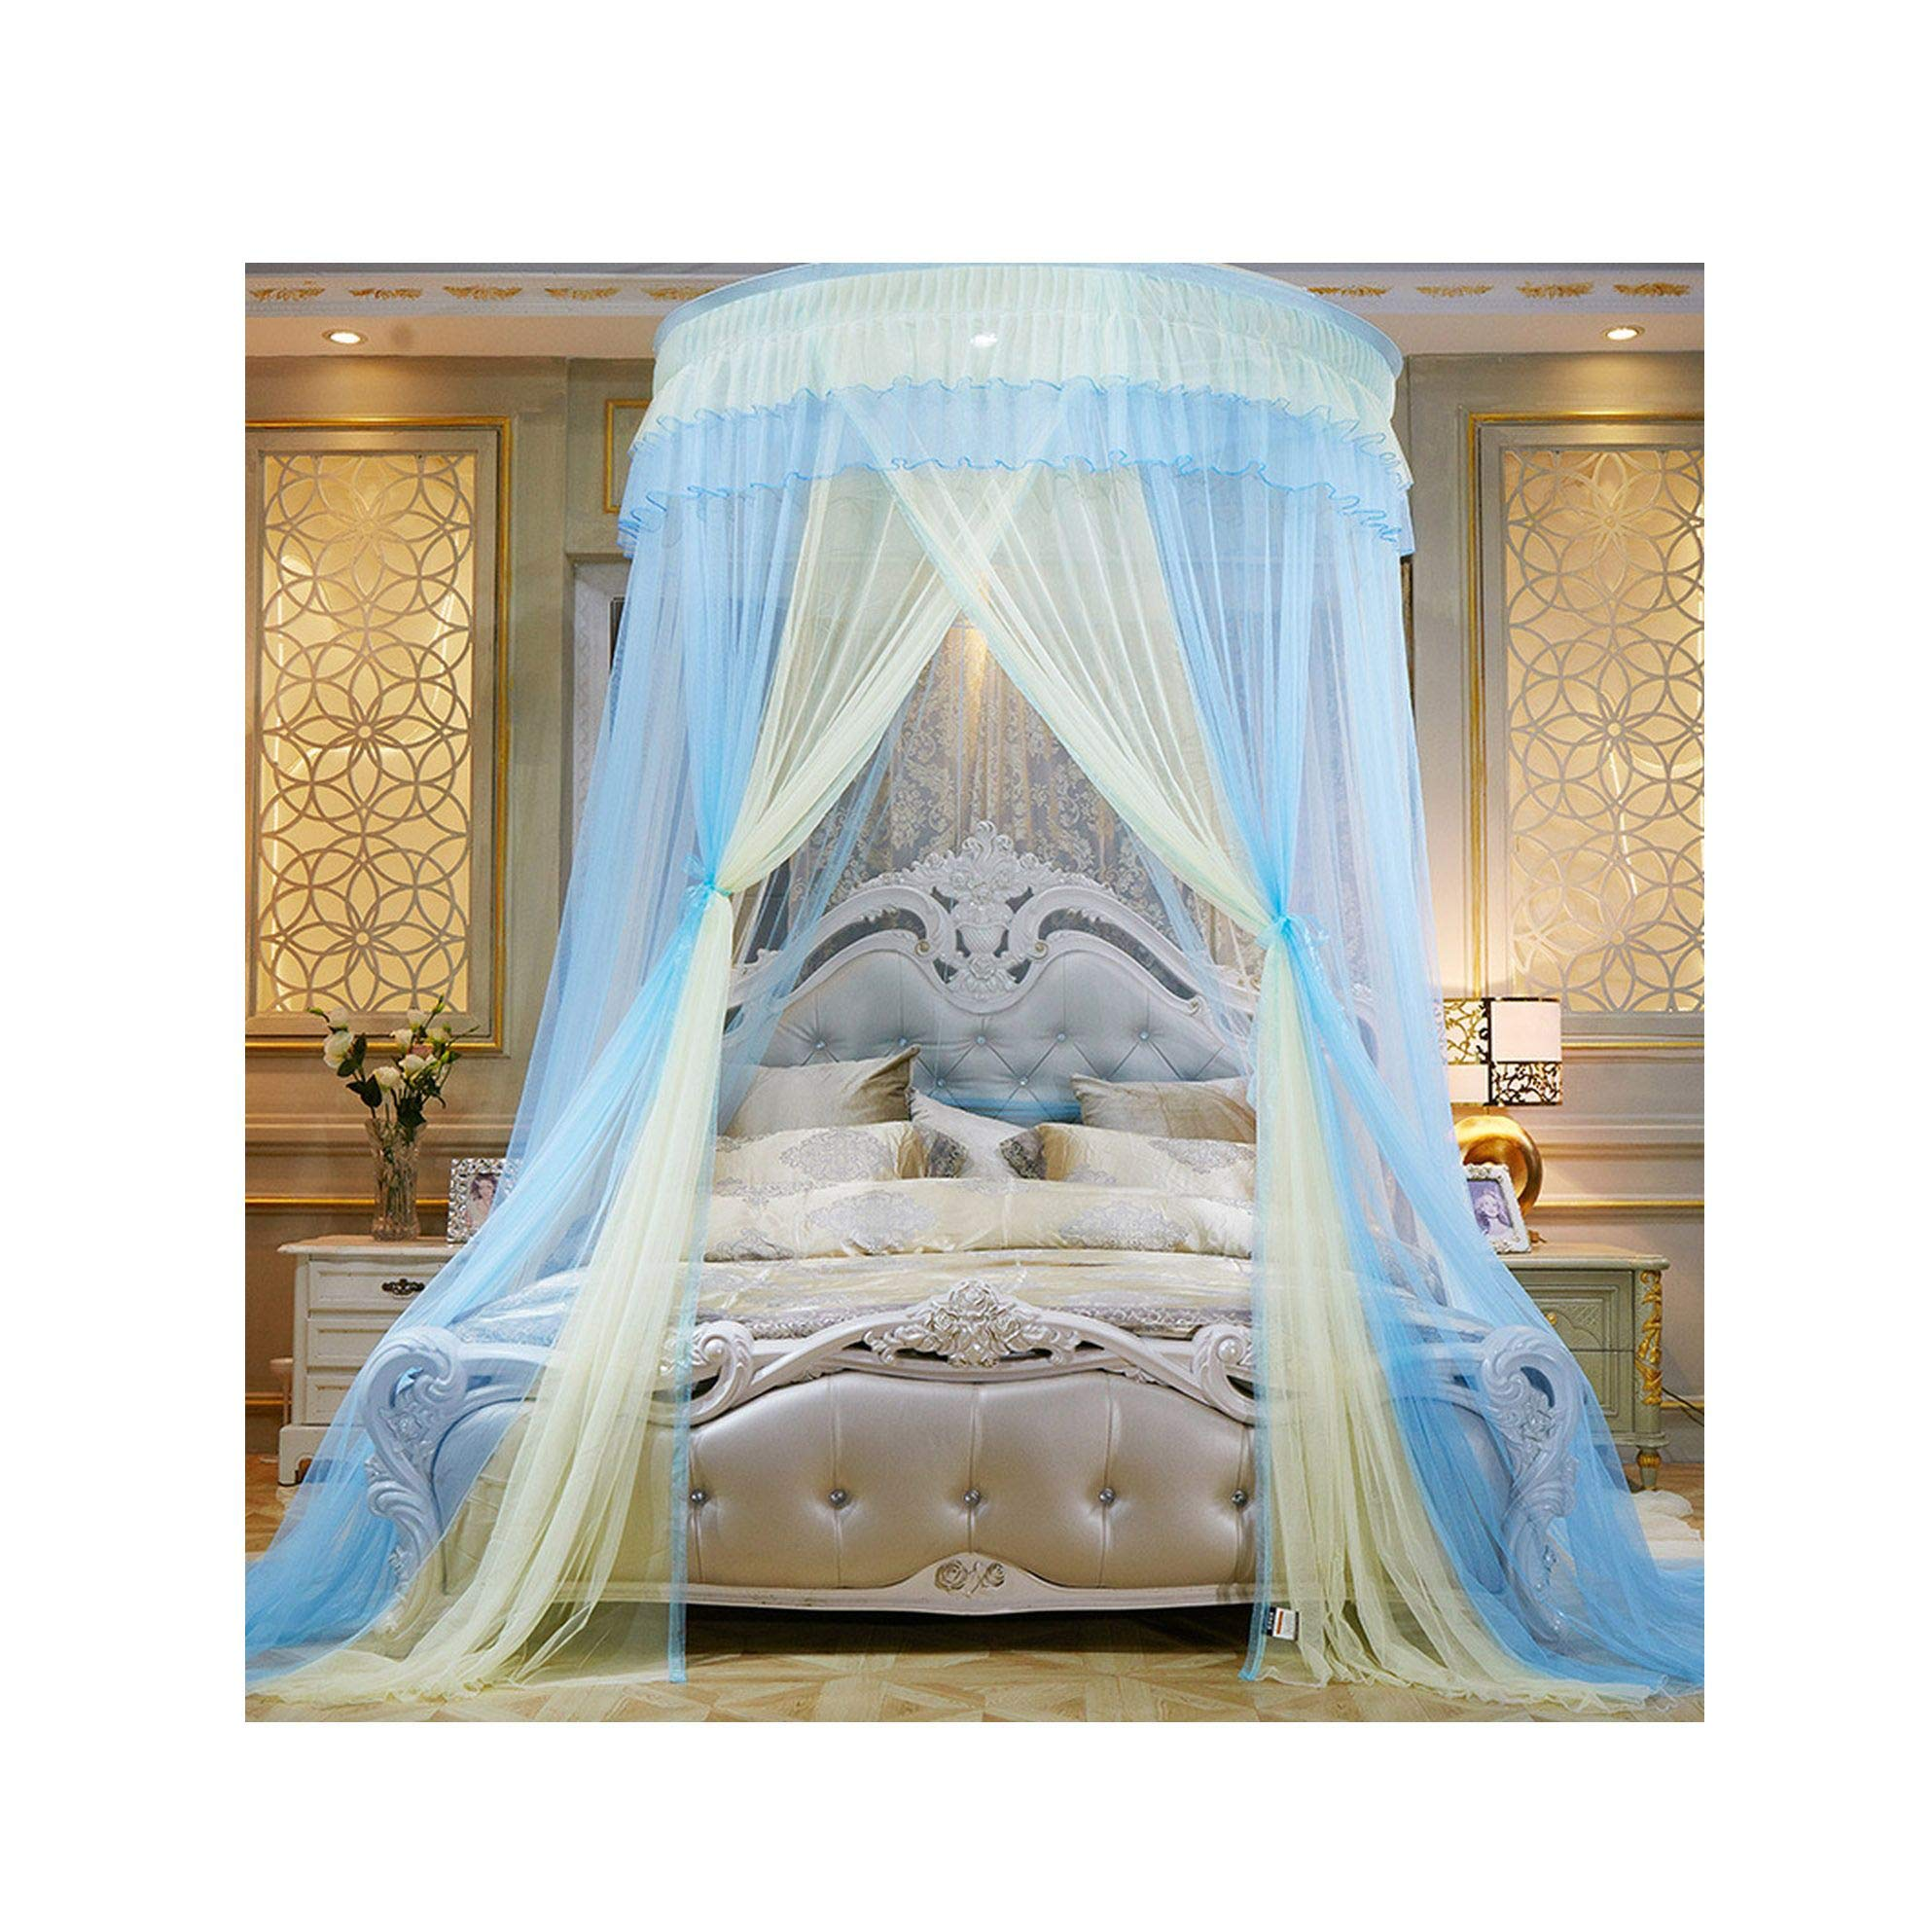 FAT BABY Colorful Mosquito Net Princess Insect Net Single-Door Hung Dome Bed Canopies Netting Round Mosquito Net Commonly Used,5